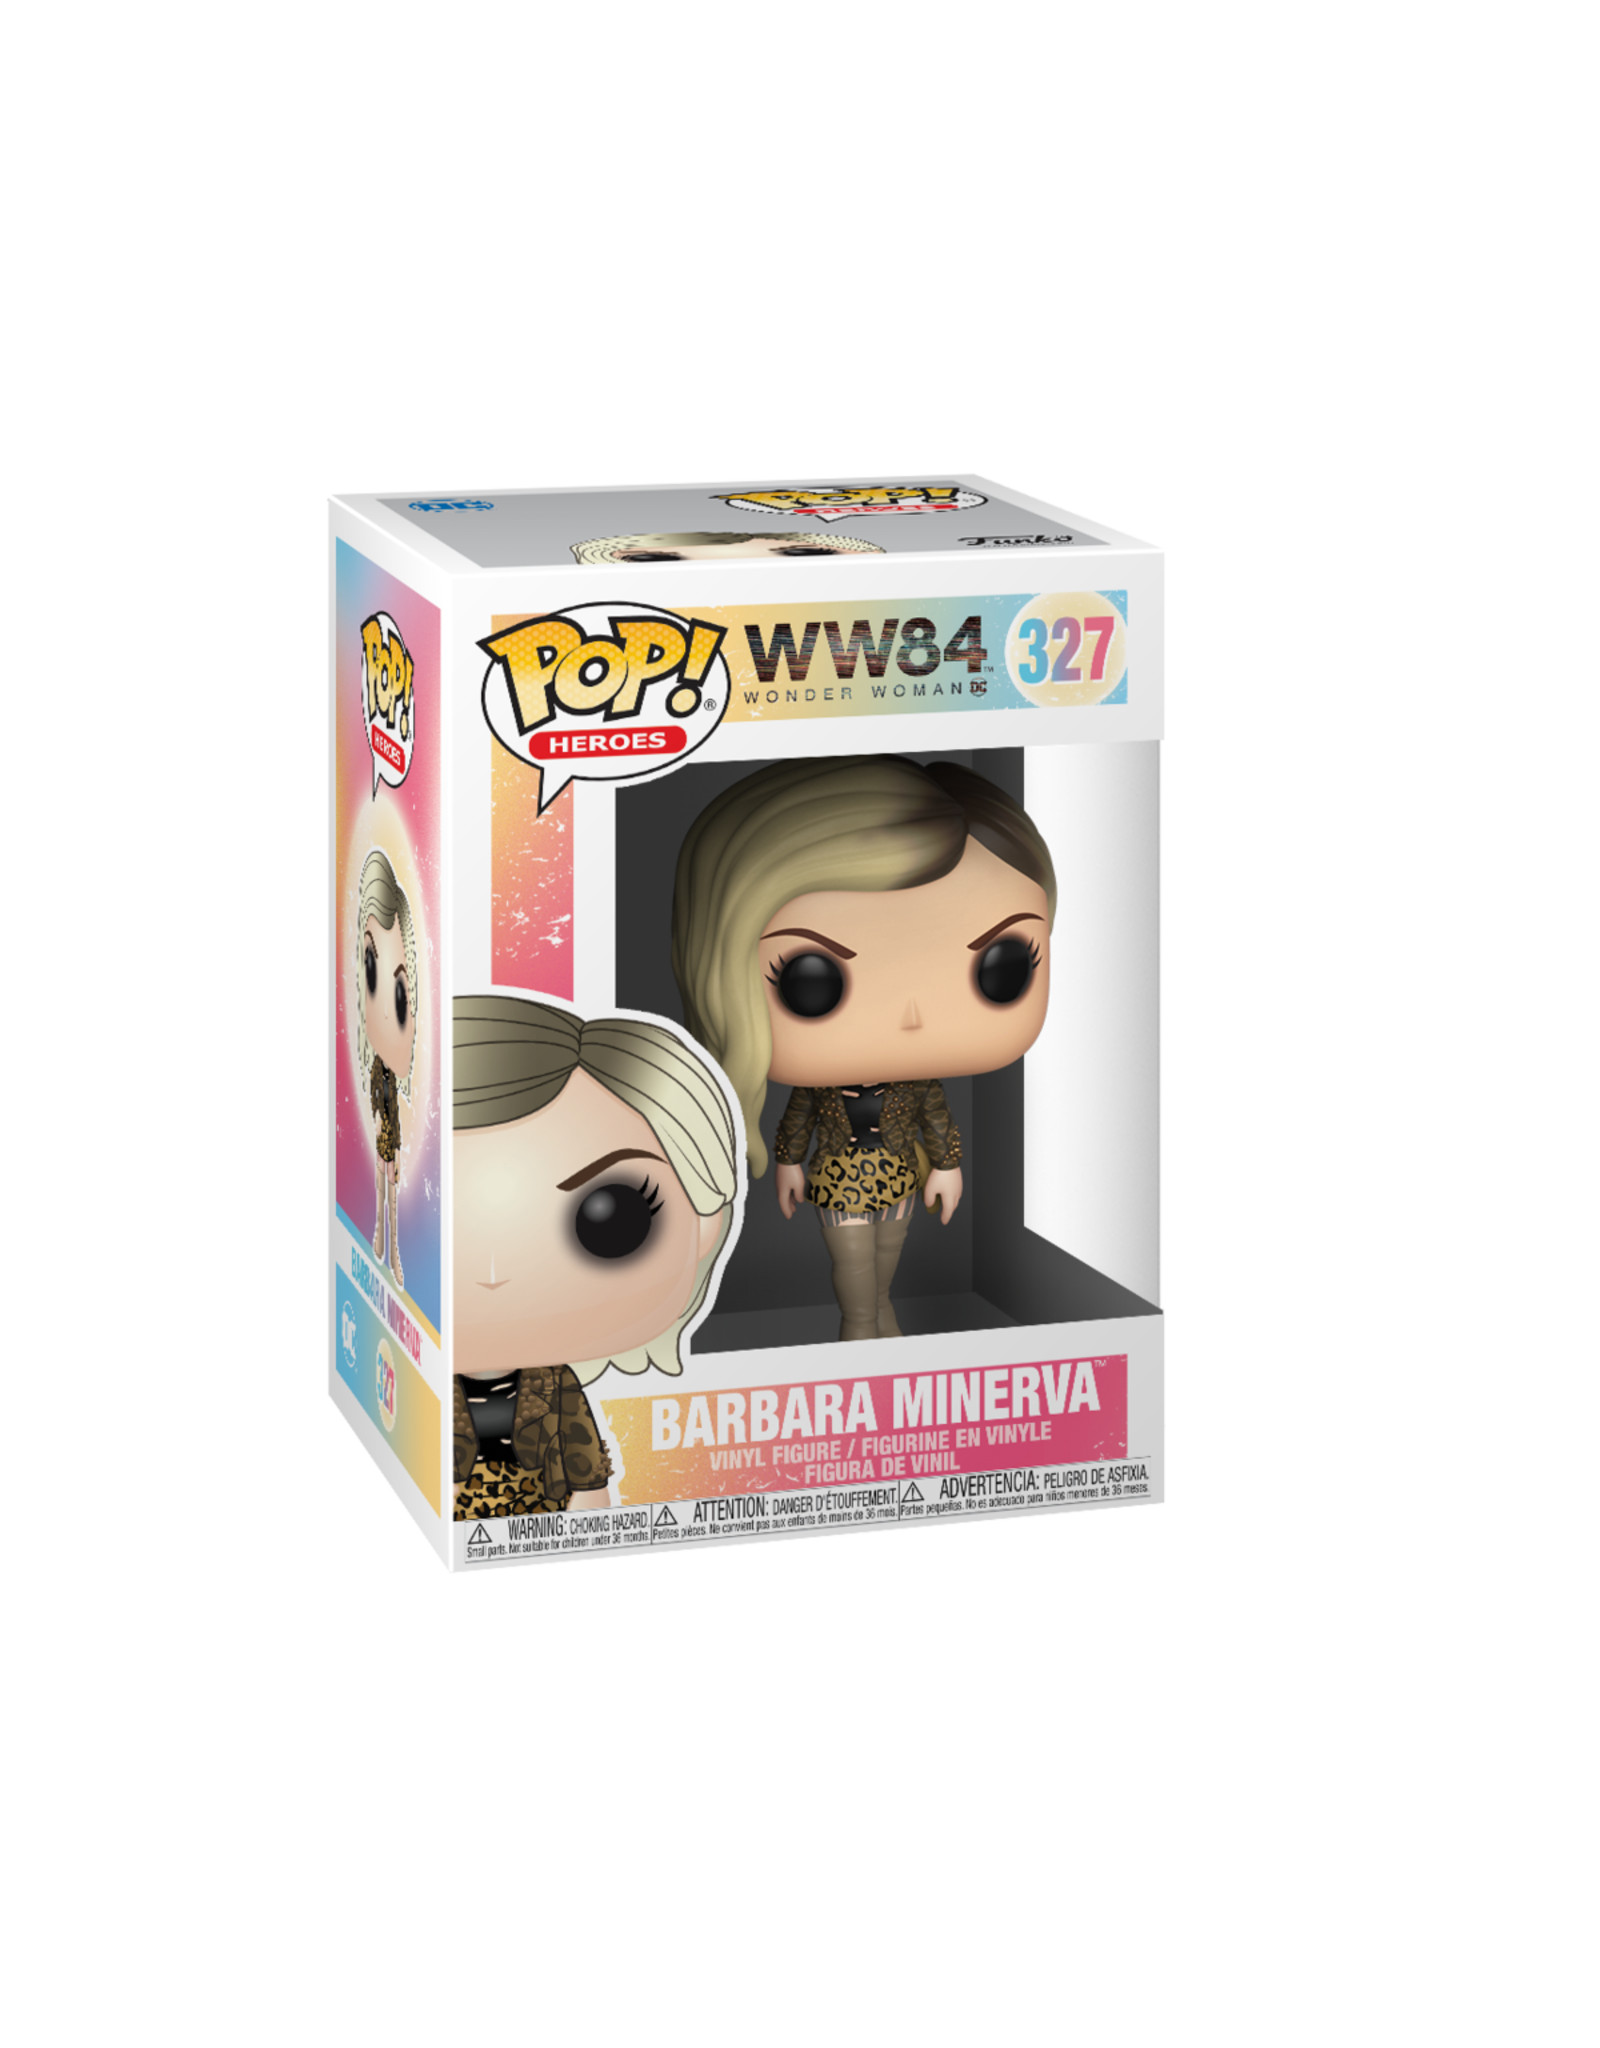 FUNKO POP HEROES WONDER WOMAN 1984 BARBARA MINERVA